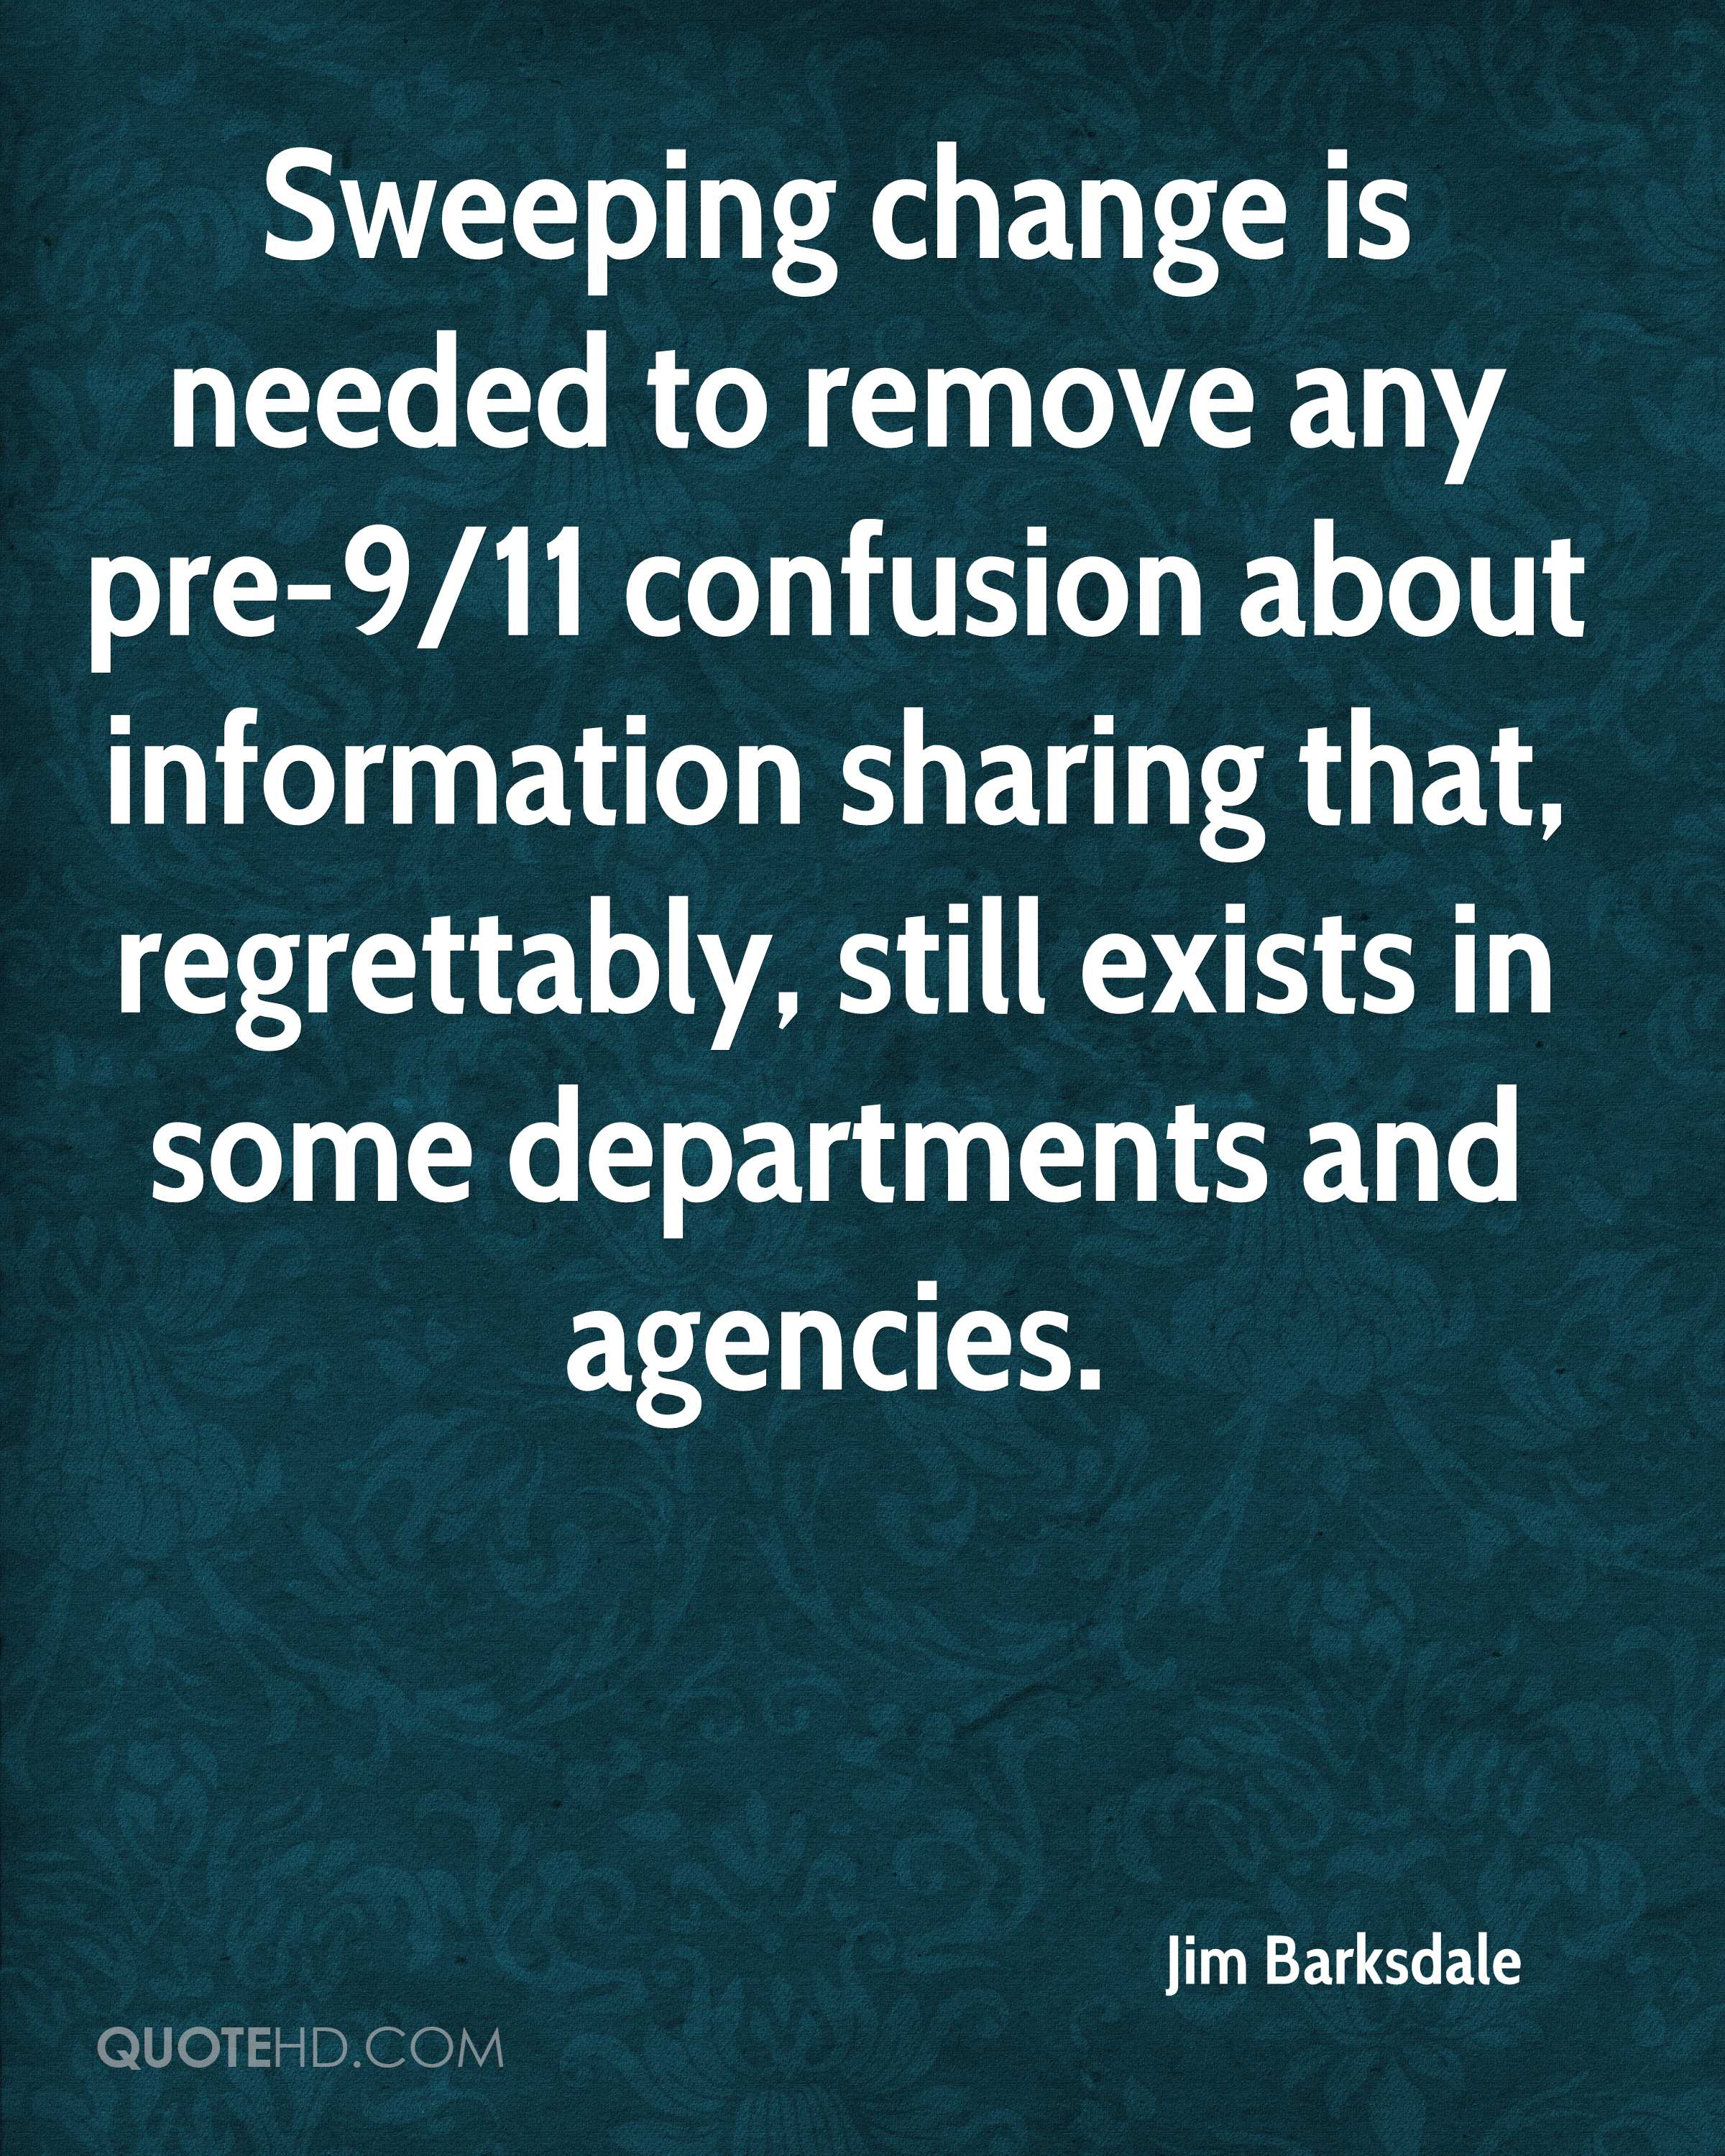 Sweeping change is needed to remove any pre-9/11 confusion about information sharing that, regrettably, still exists in some departments and agencies.